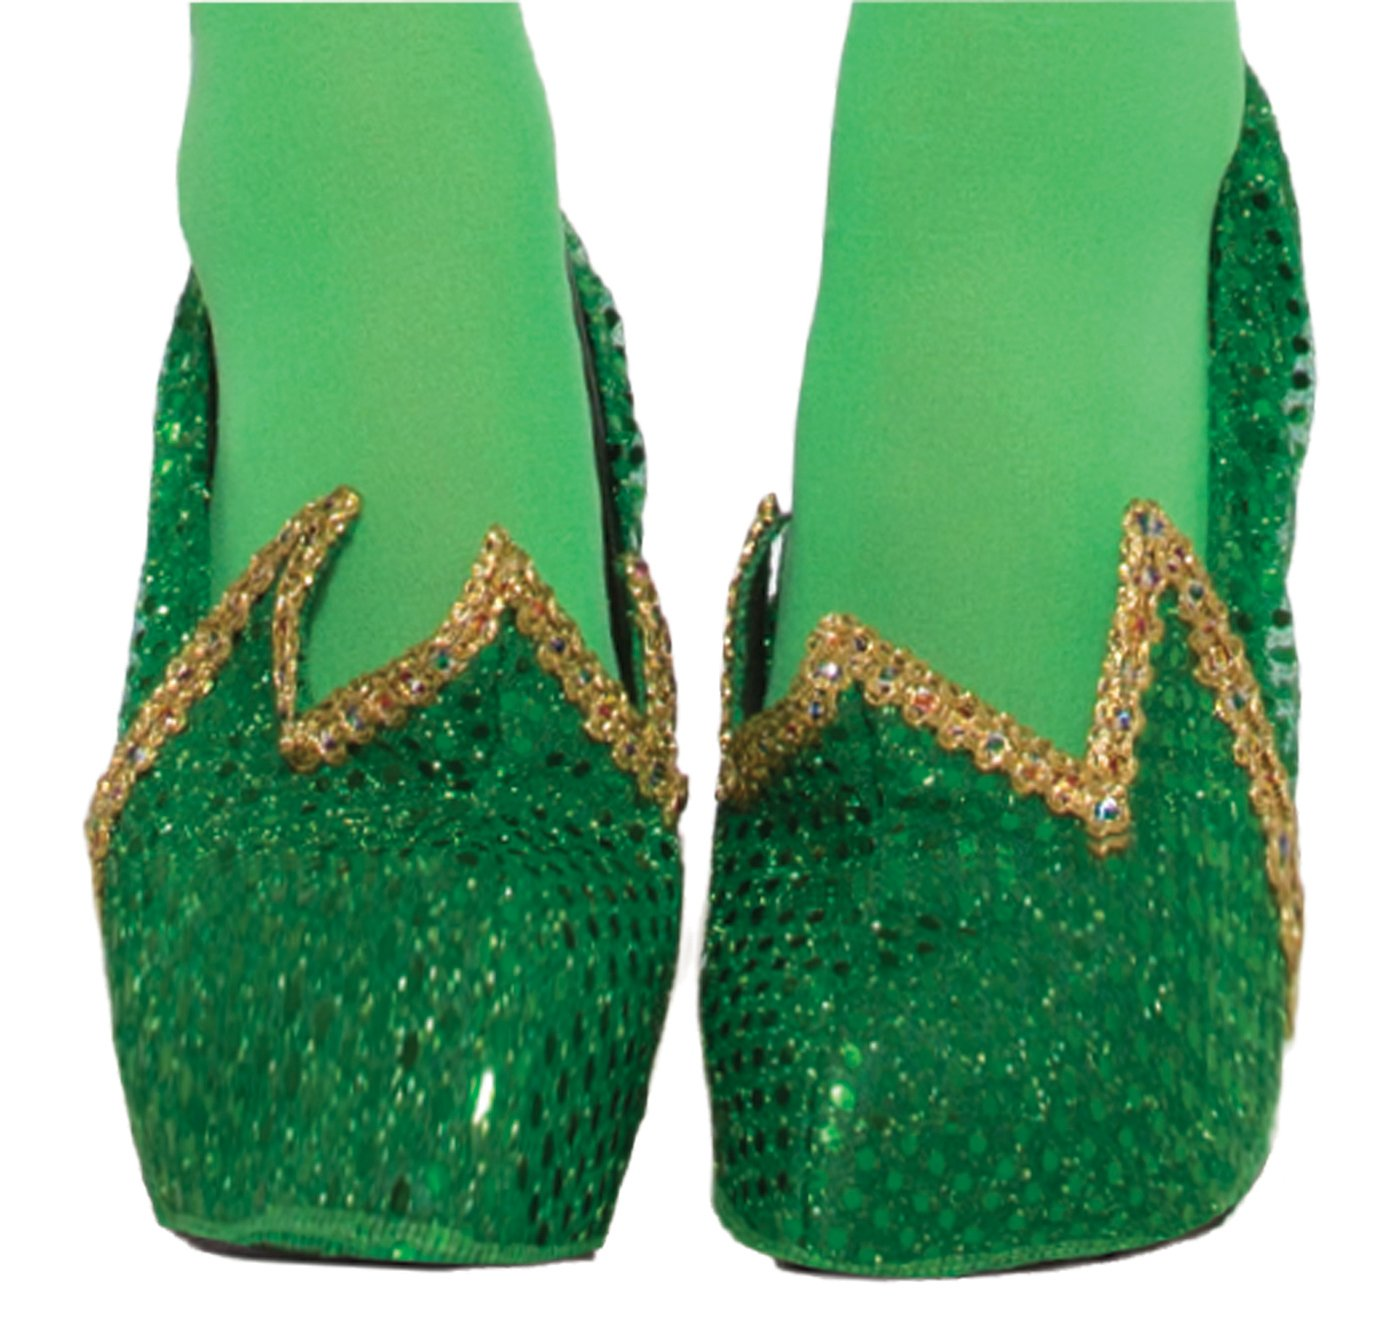 Forum Novelties Adult Miss Pixie Tinkerbell Costume Shoe Covers 78496